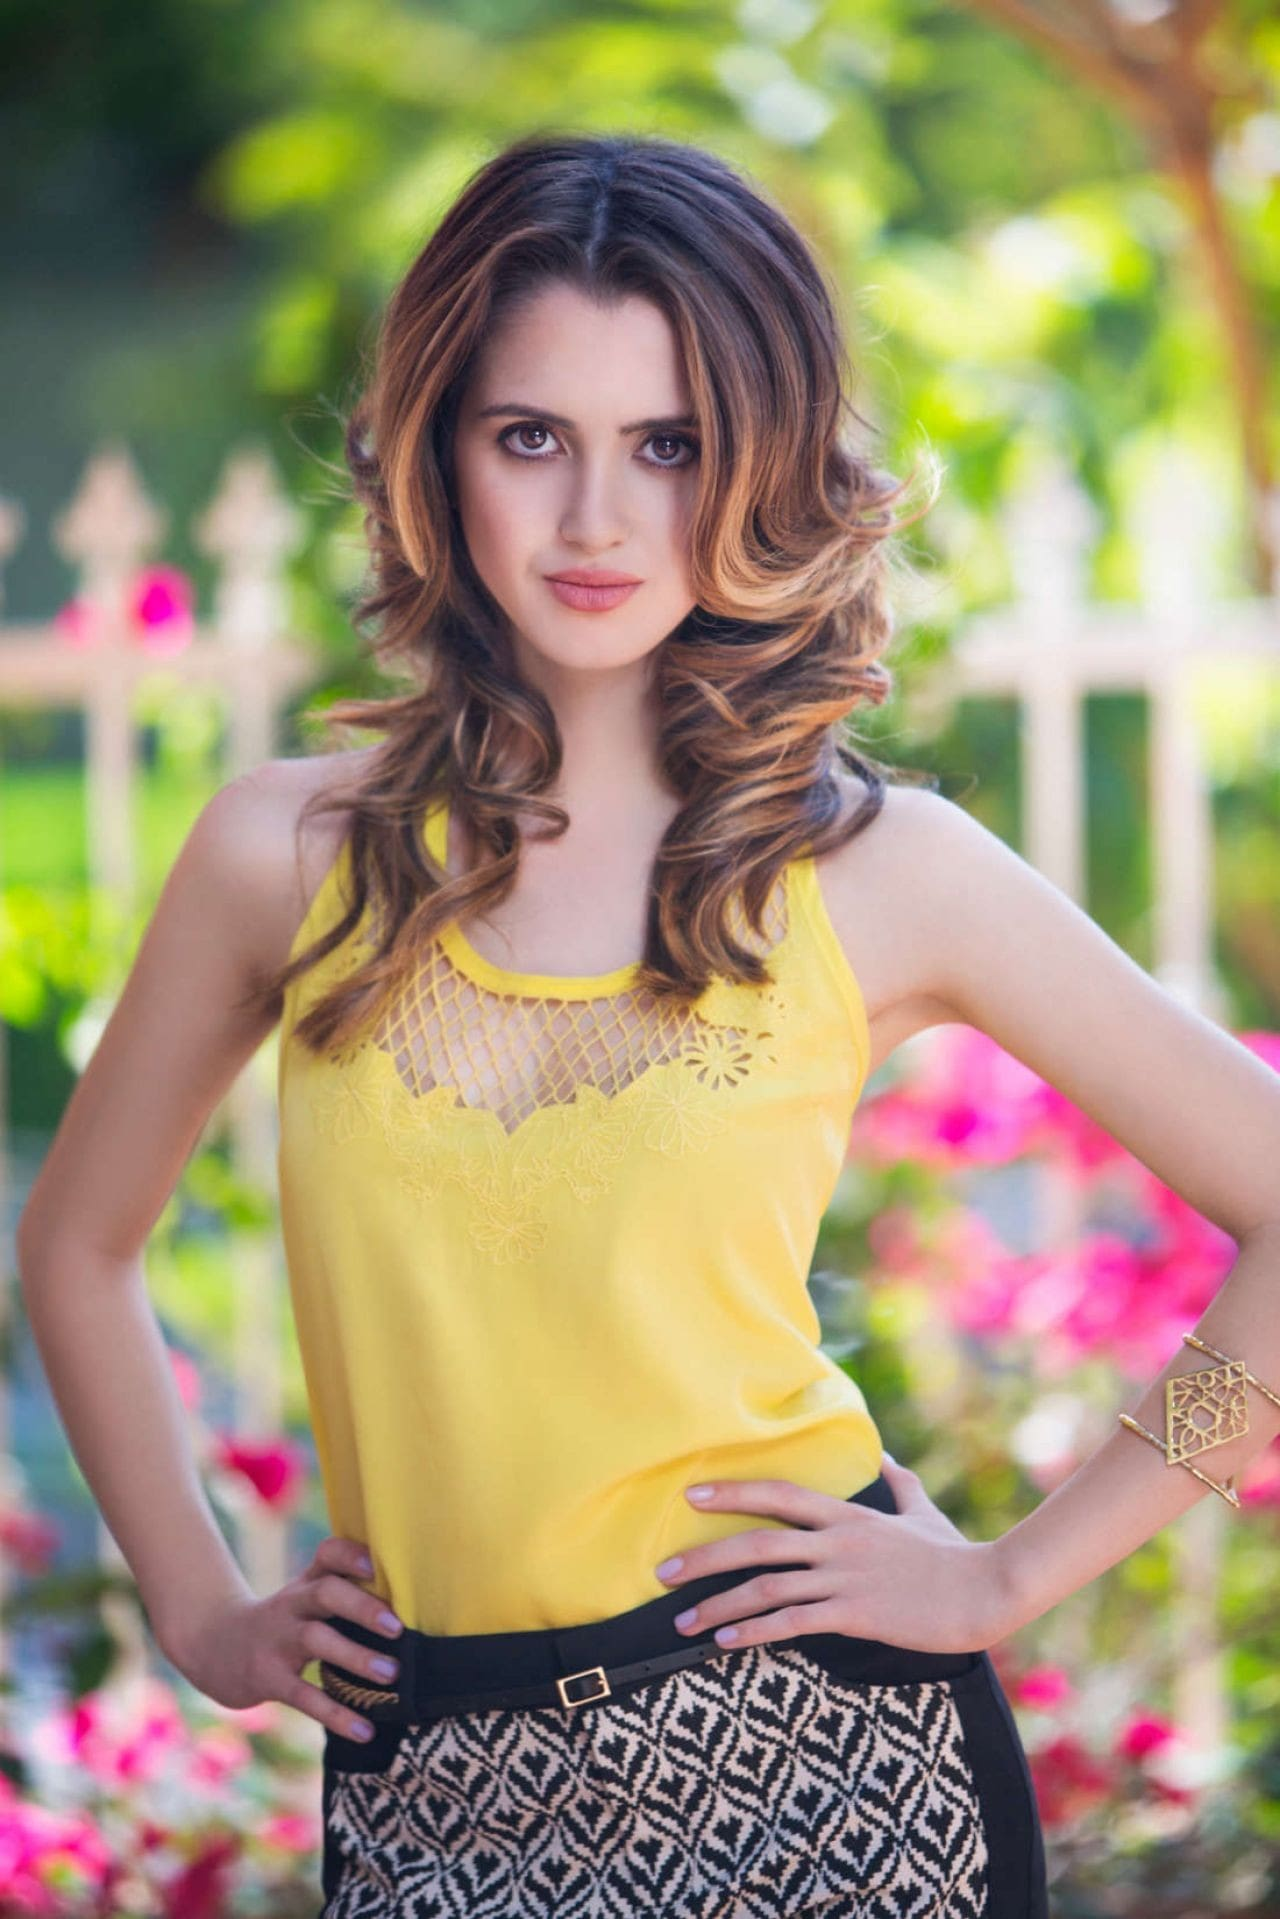 Laura Marano cleavages pic